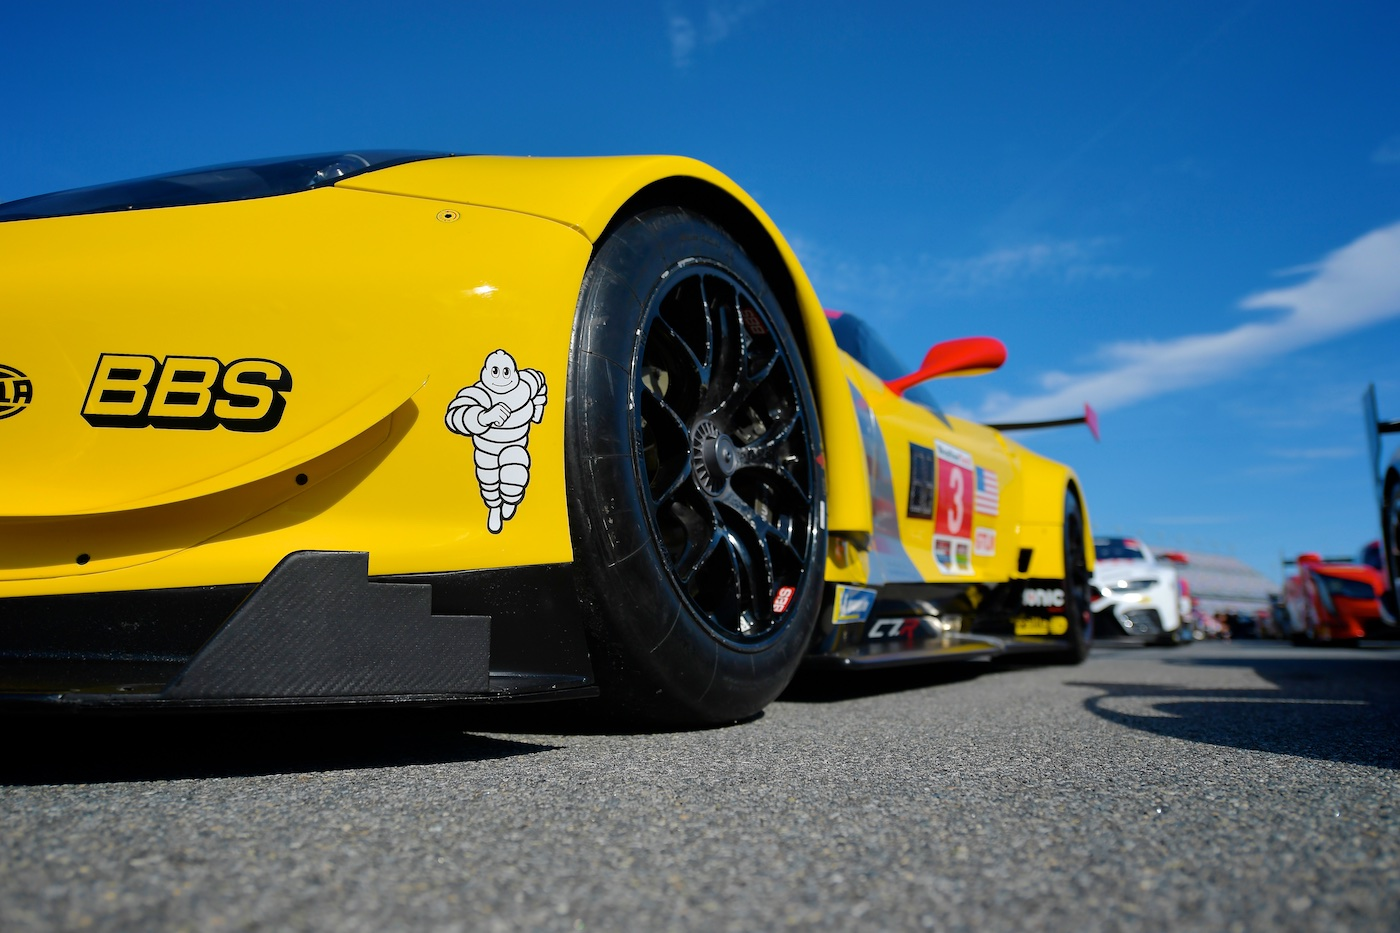 Corvette, Michelin begin 15th year together